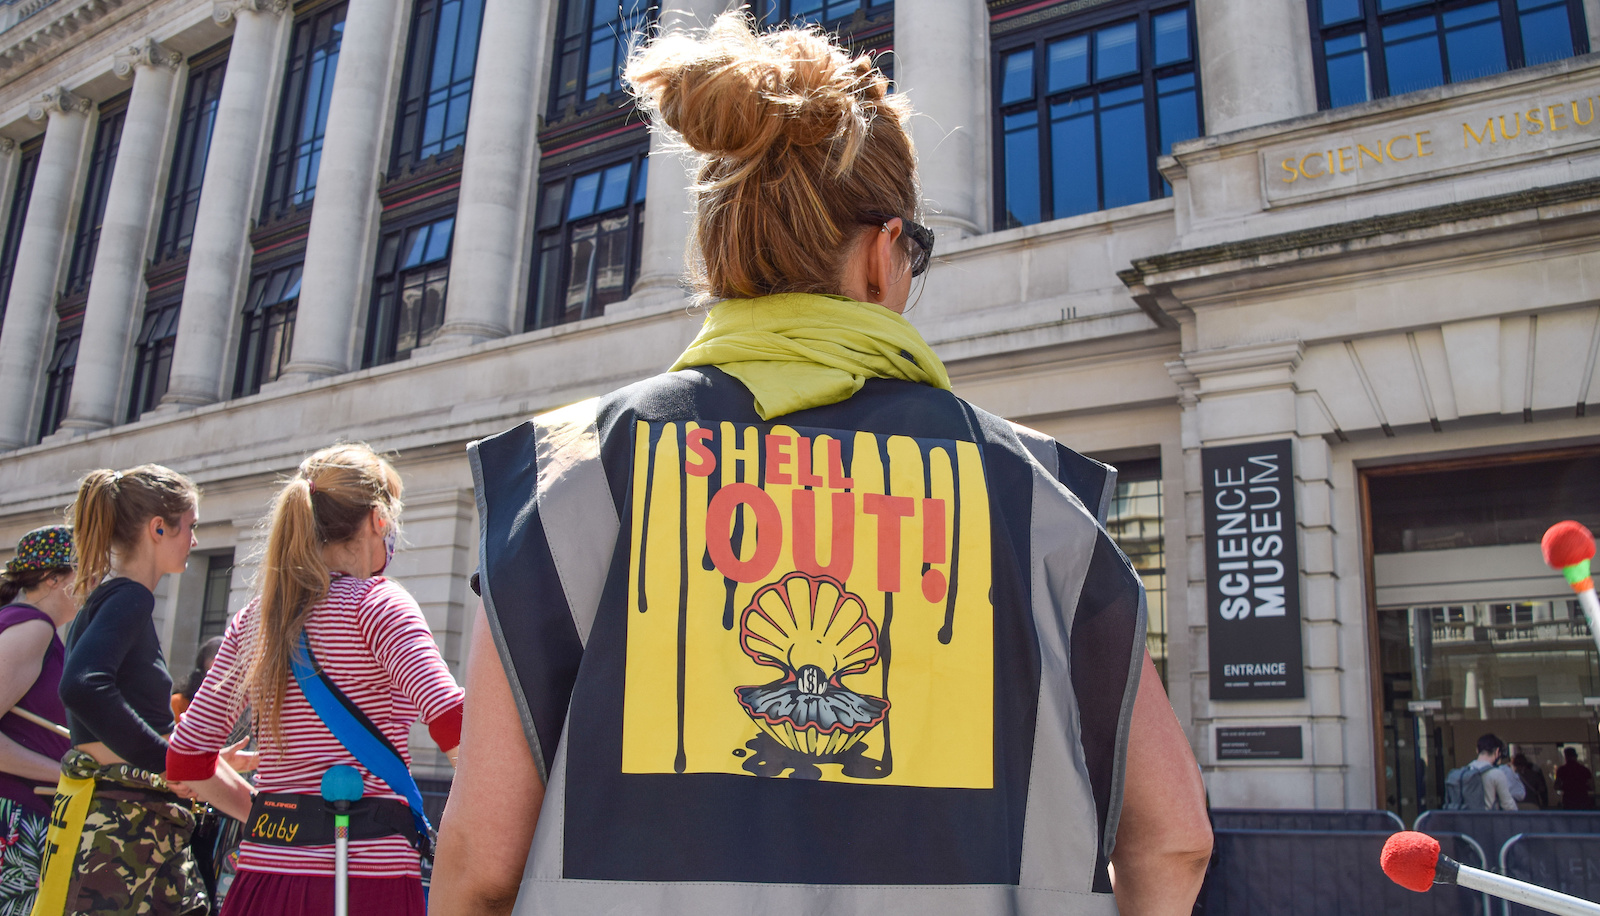 Woman stands outside UK science museum with shirt that says SHELL OUT